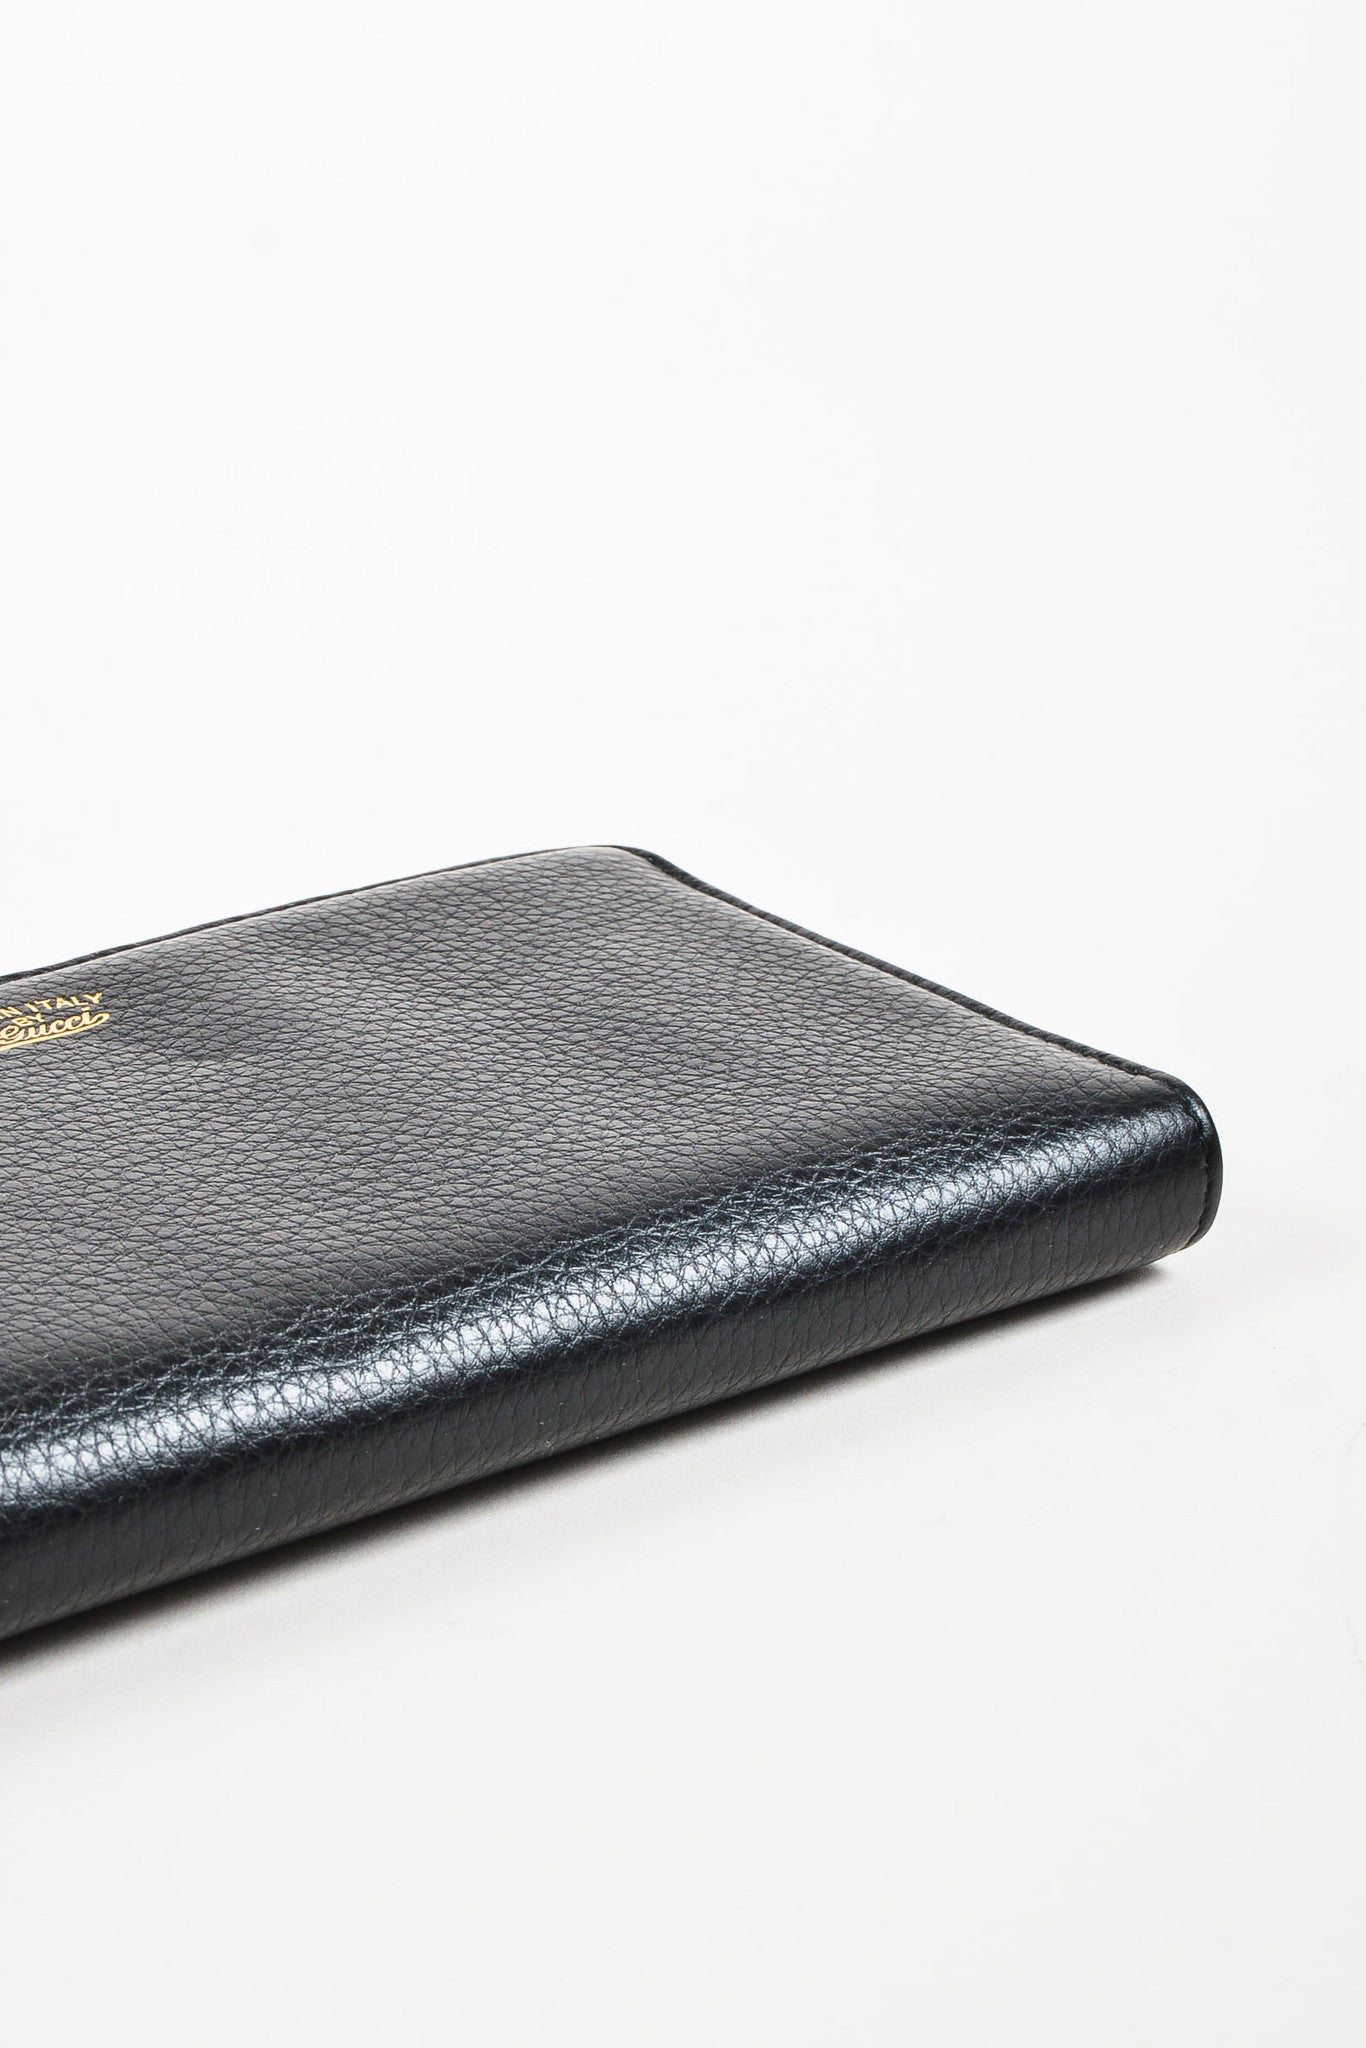 "Gucci Black Gold Toned Leather Bamboo Tassel ""Zip Around"" Wallet bottom View"